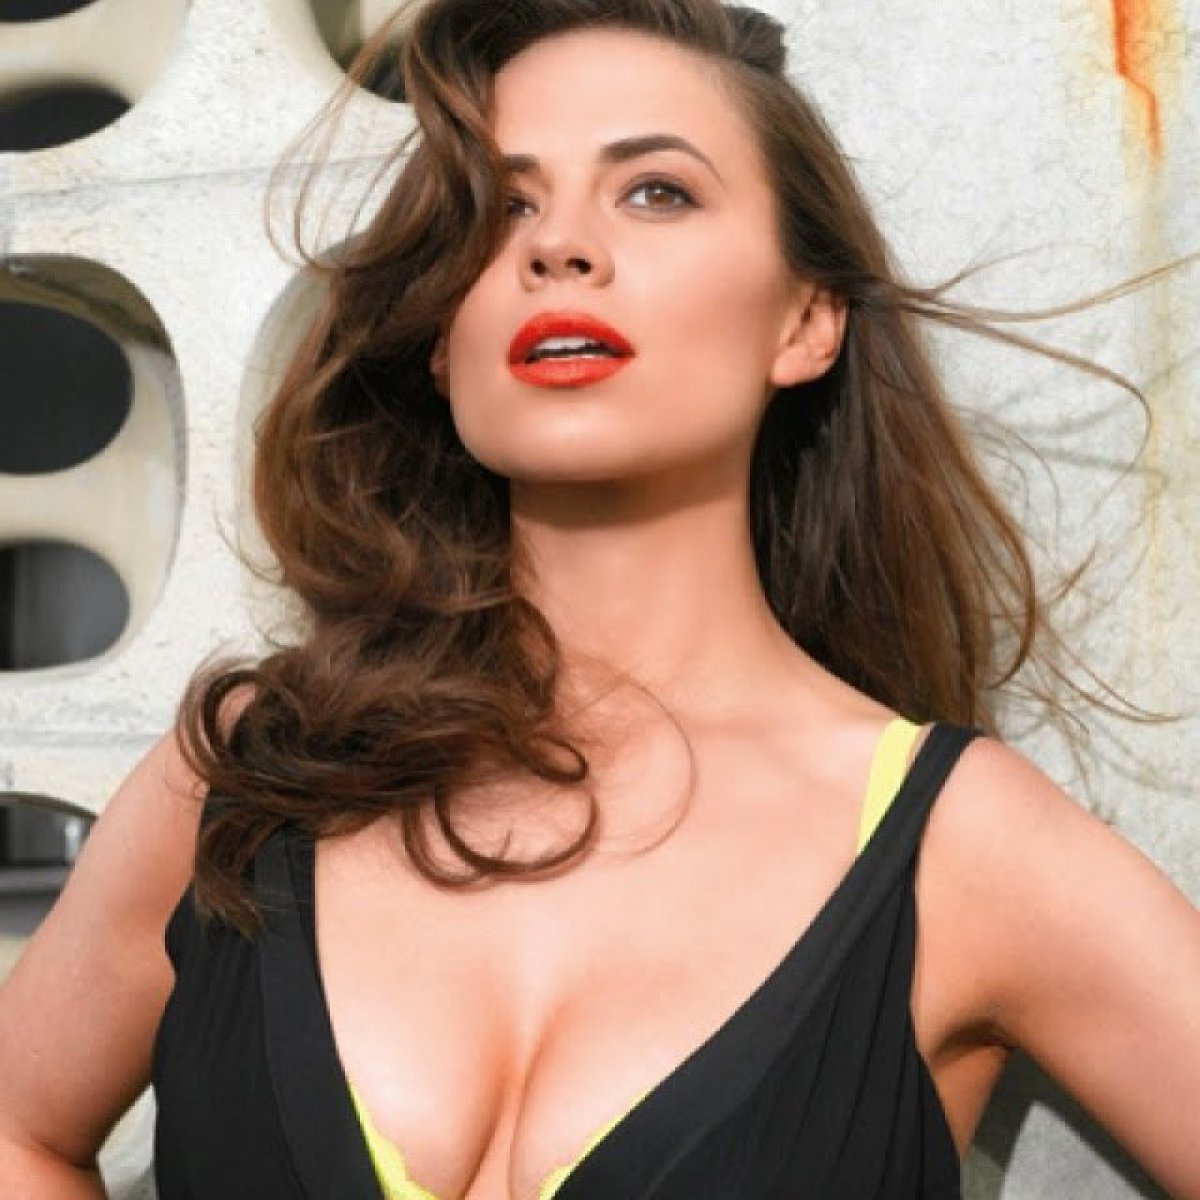 Instagram Hayley Atwell nudes (59 photo), Pussy, Sideboobs, Twitter, cameltoe 2006